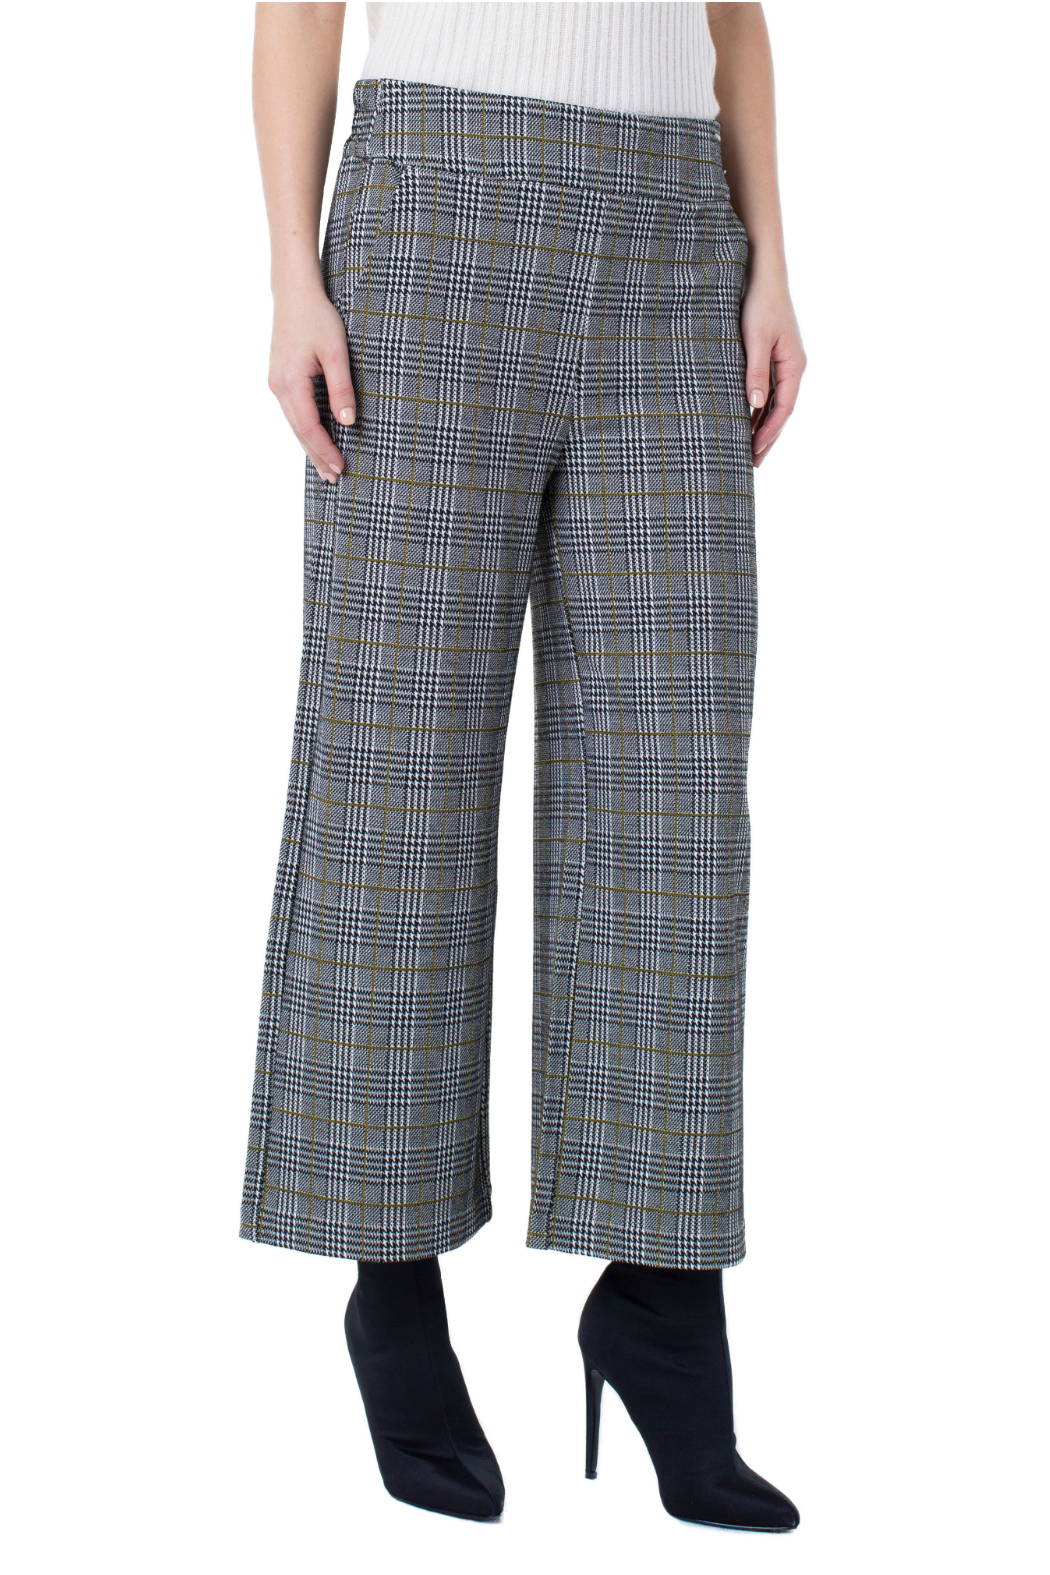 Liverpool Plaid Cropped Pants - Main Image